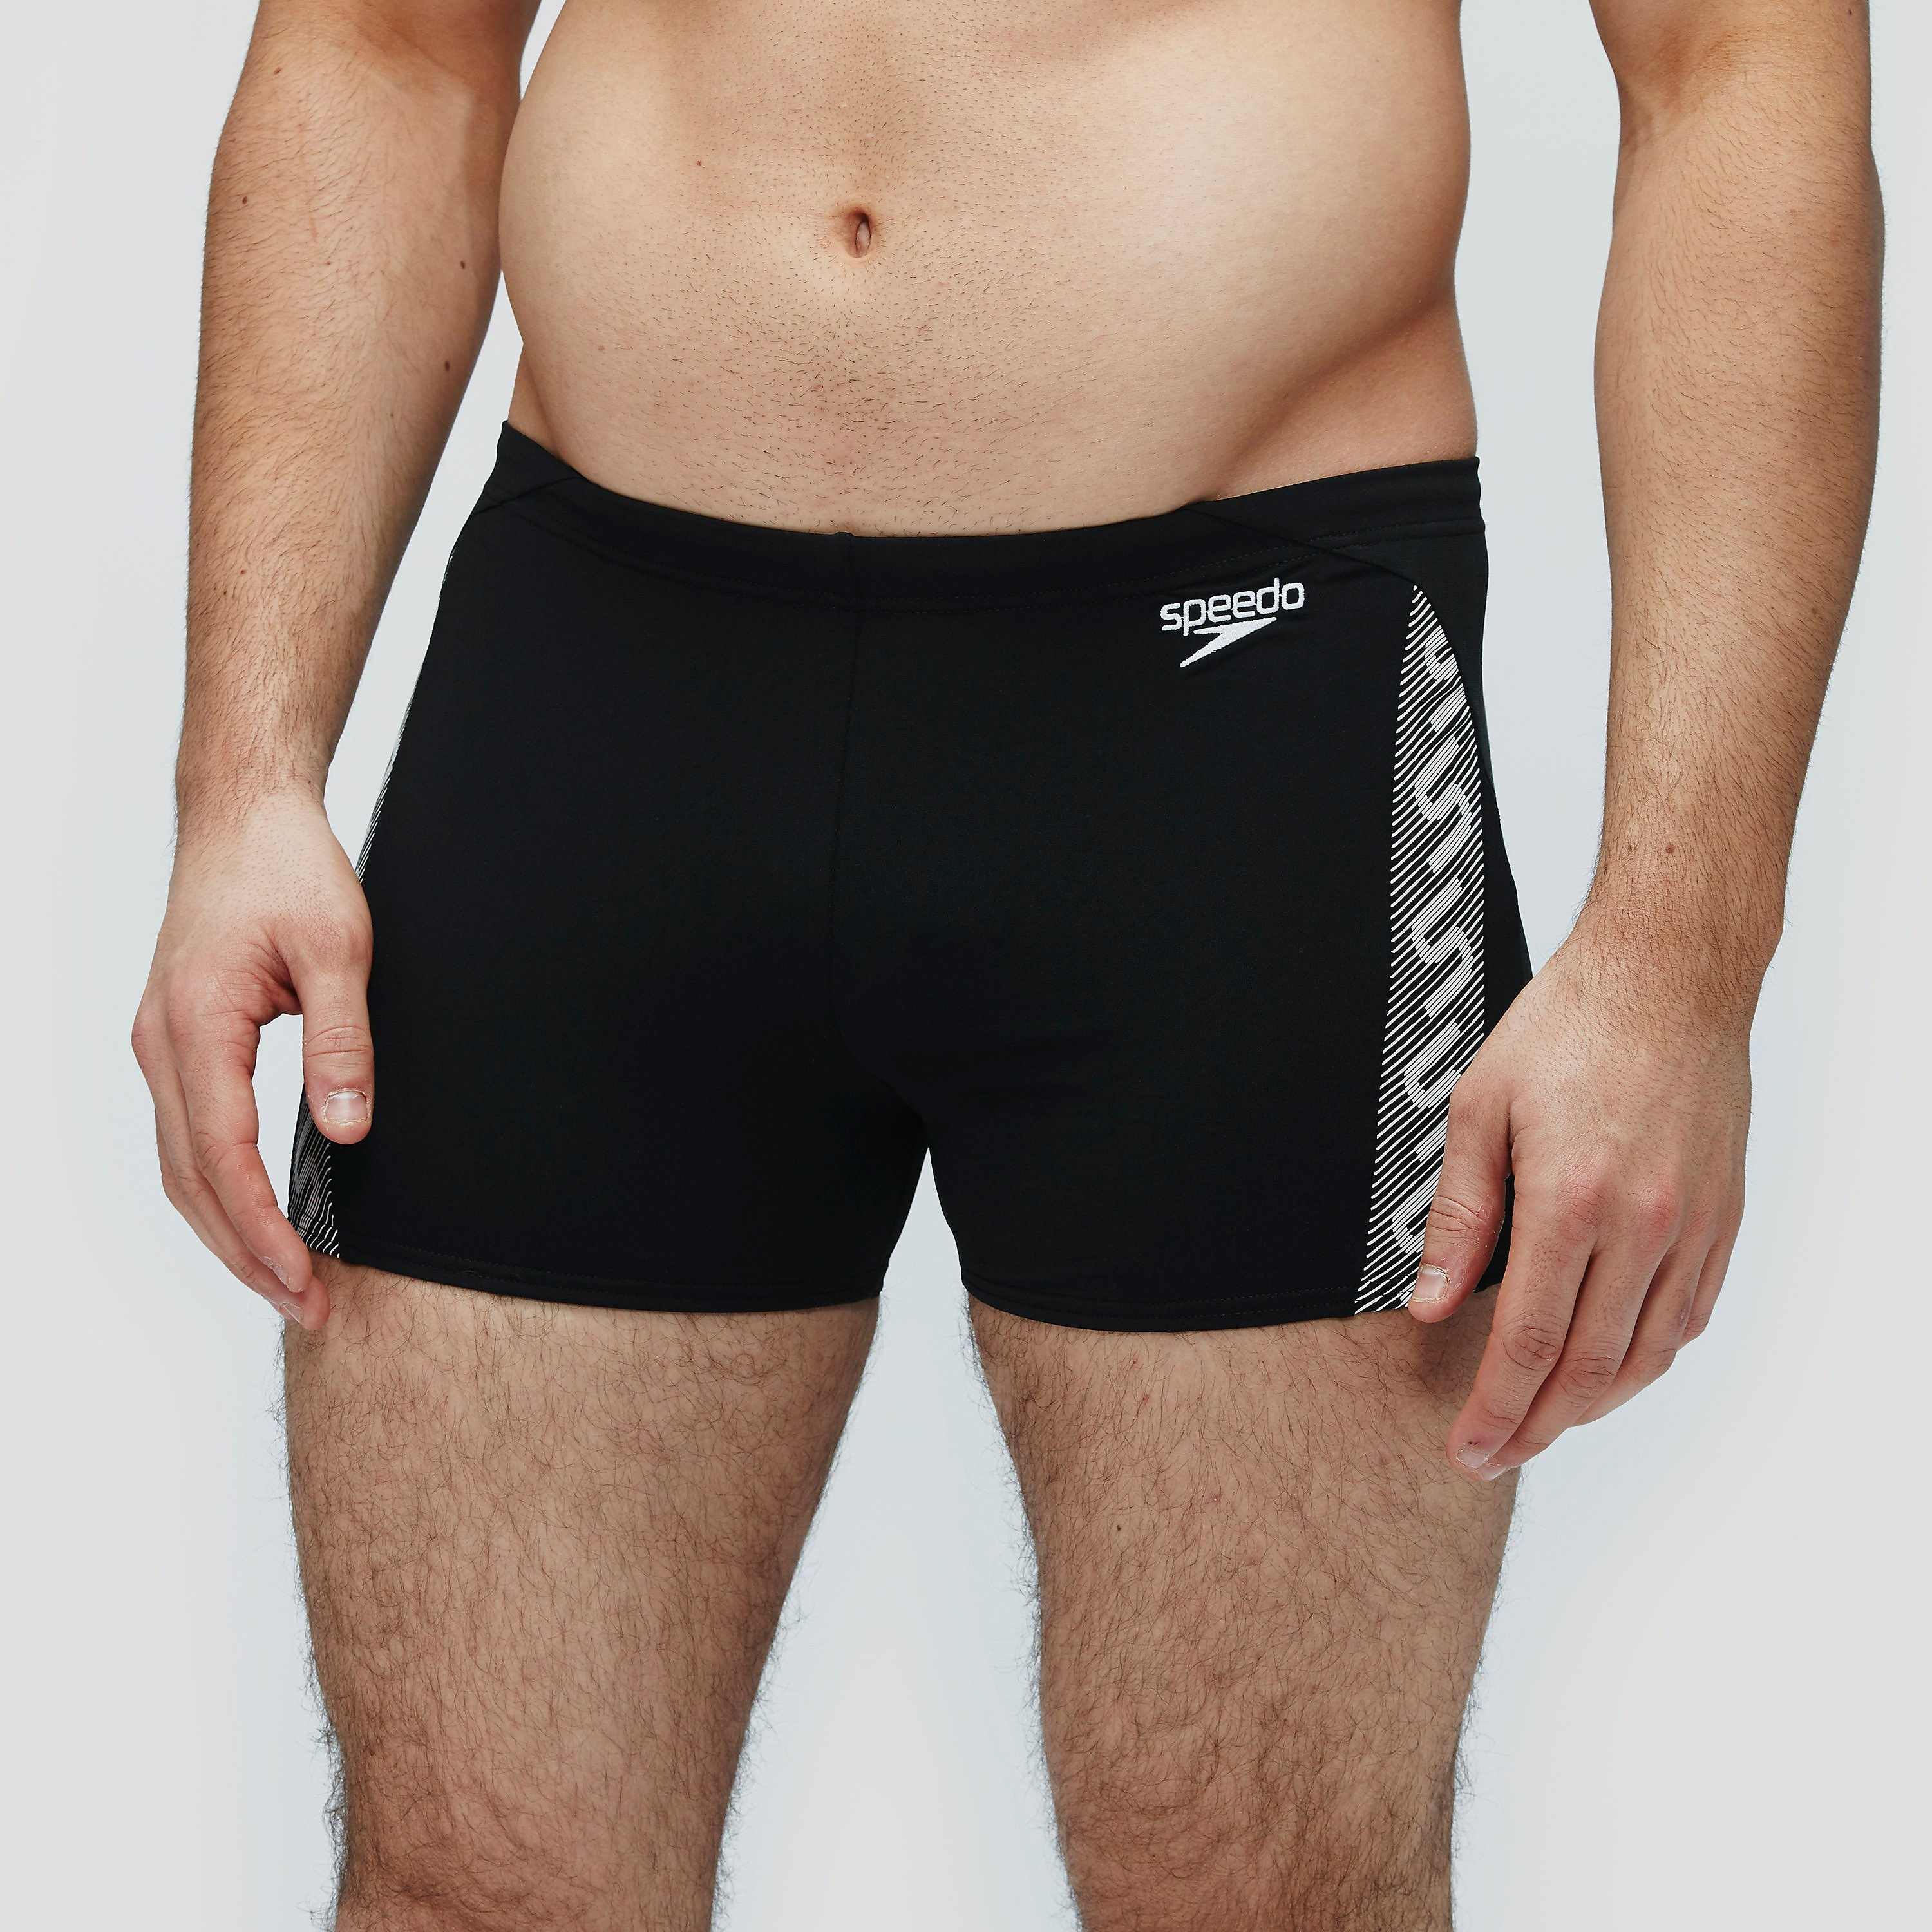 Speedo Monogram Men's Swimming Aqua Short